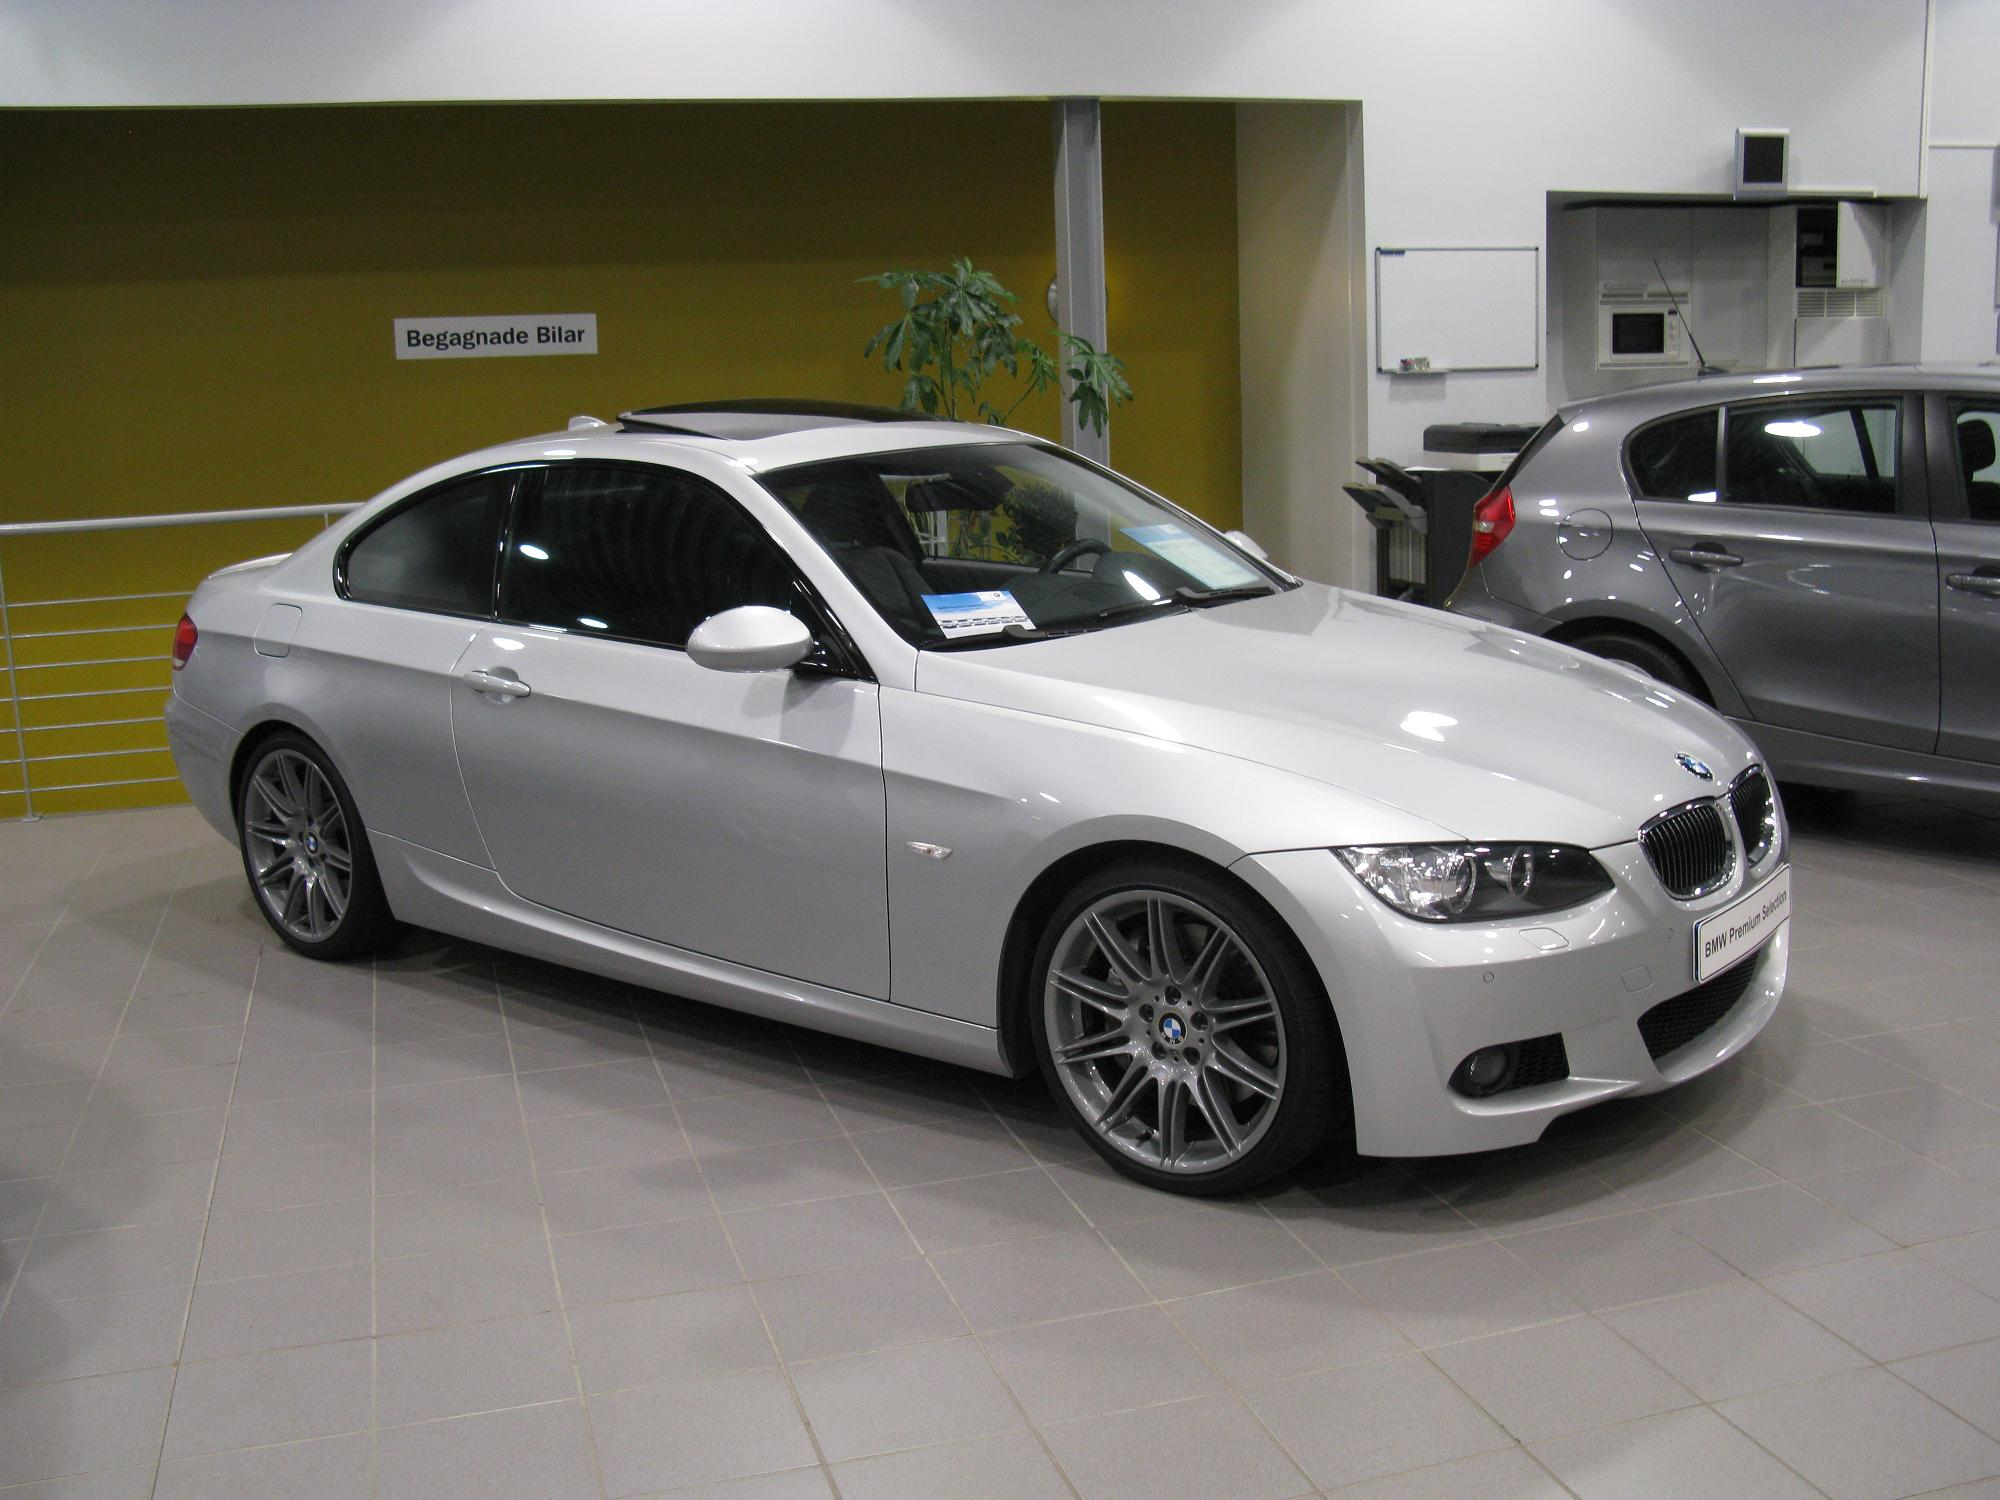 file:bmw 335i coupé m sport (5061103848) - wikimedia commons